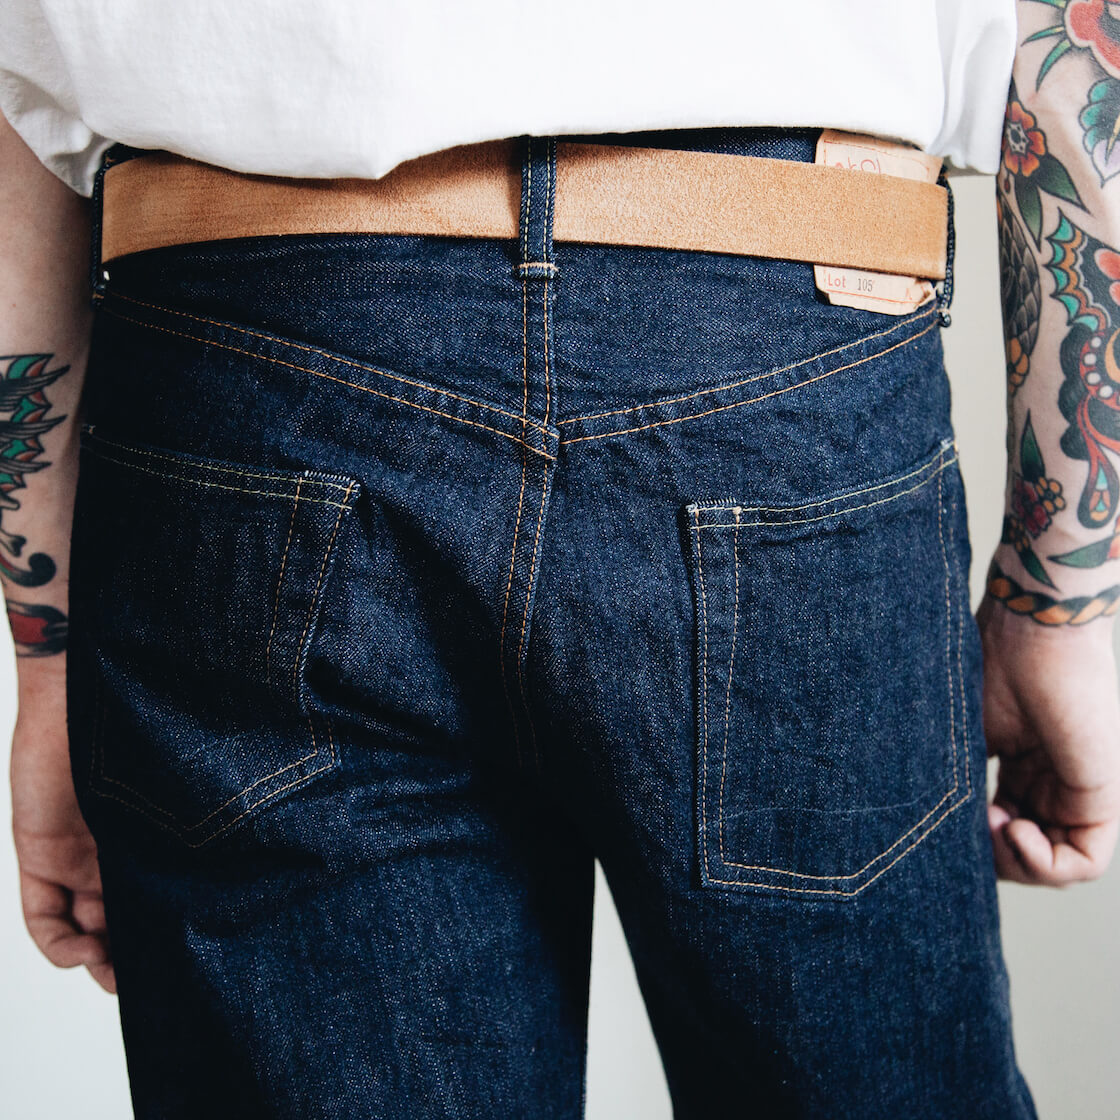 orSlow 105 Standard One Wash jeans back pocket detail on body